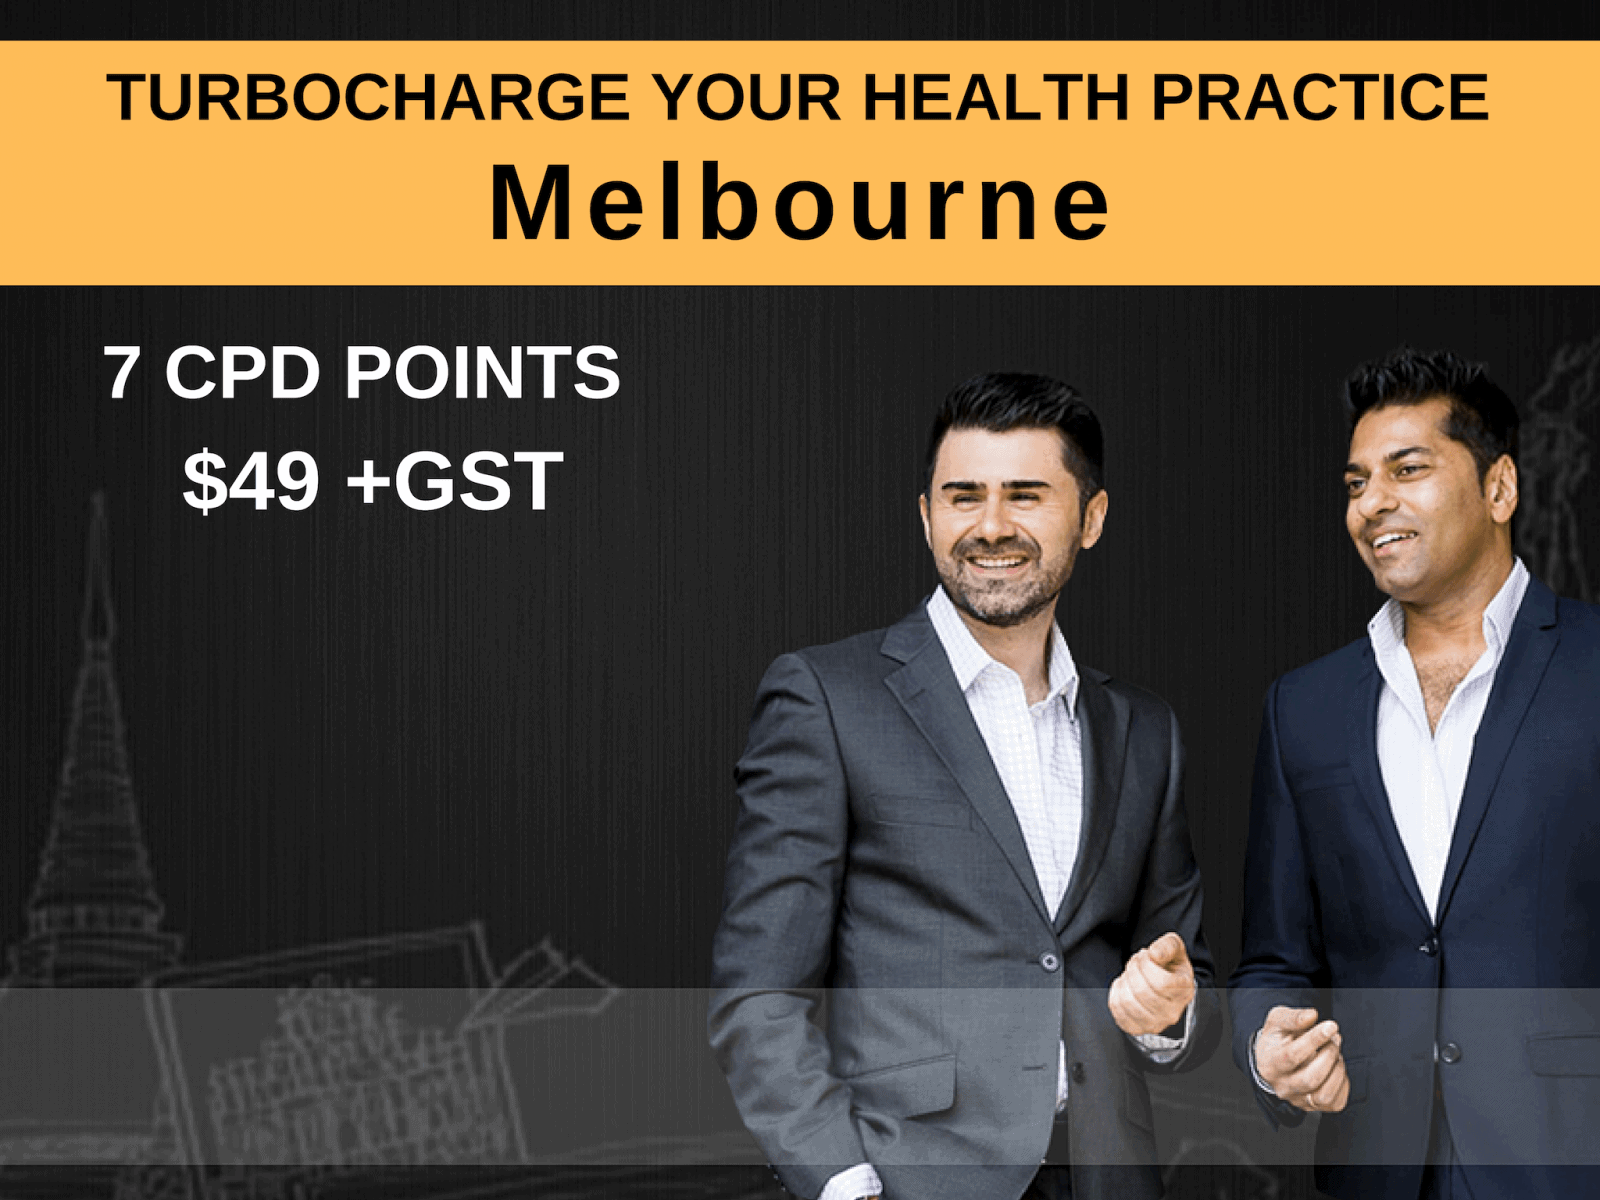 Turbocharge Your Health Practice - MELB